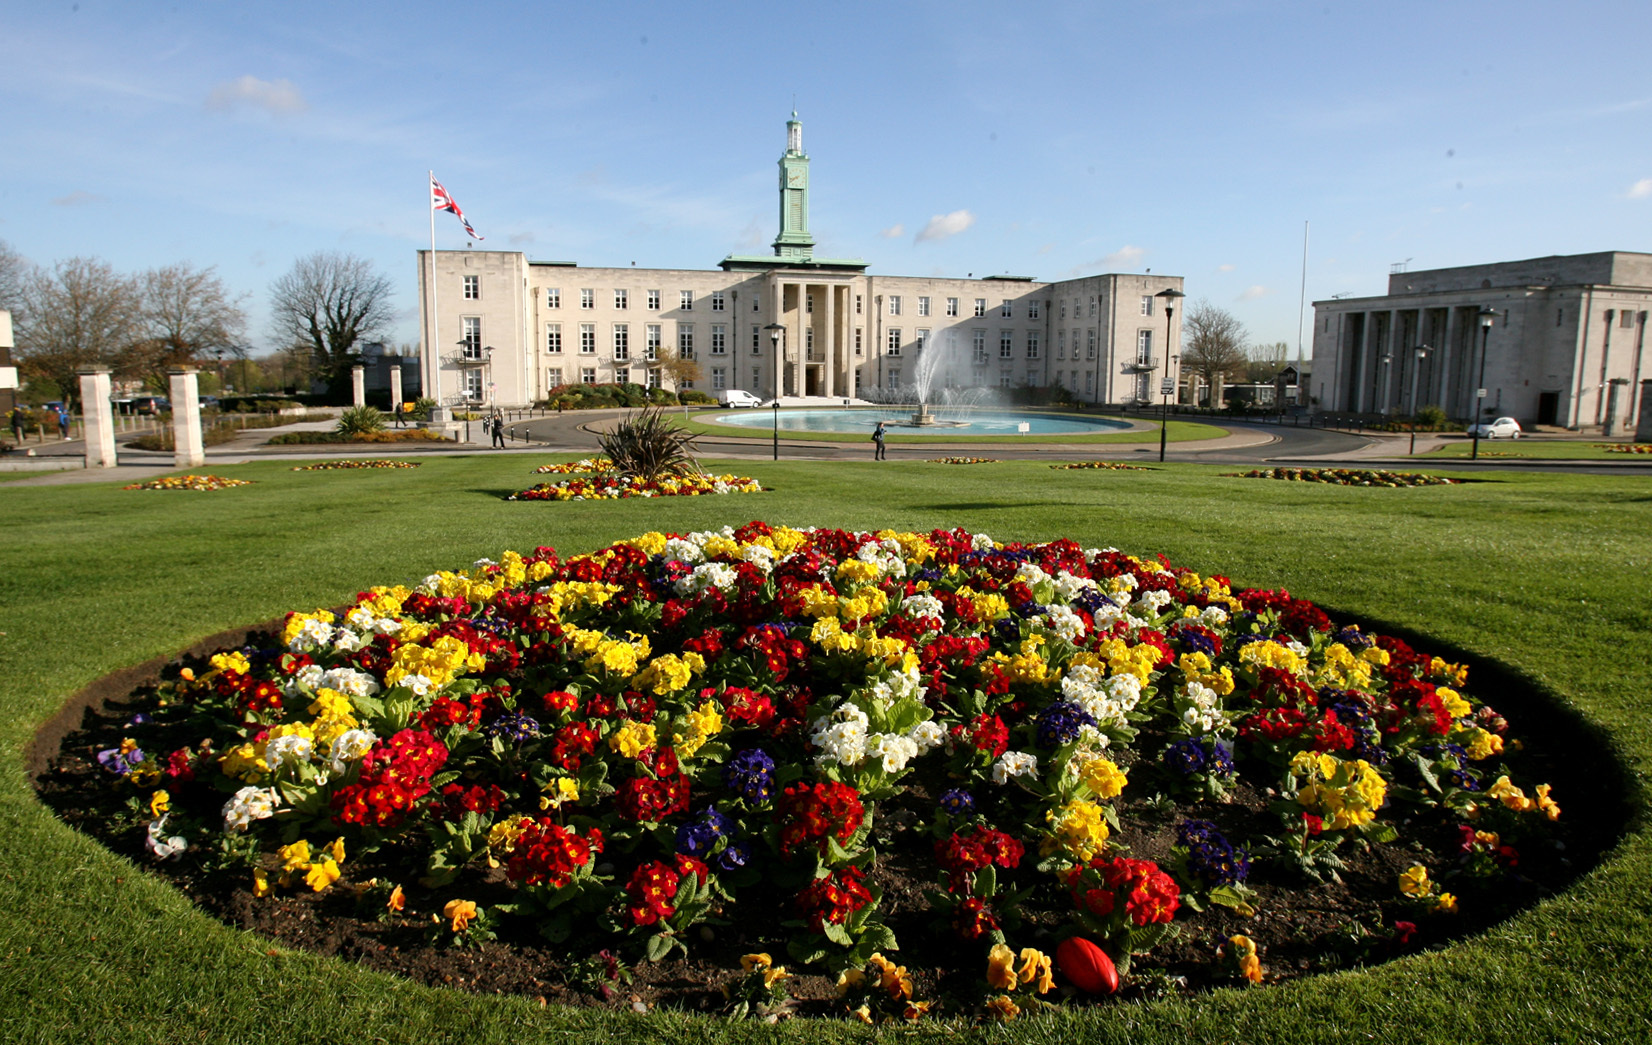 Walthamstow Town Hall.